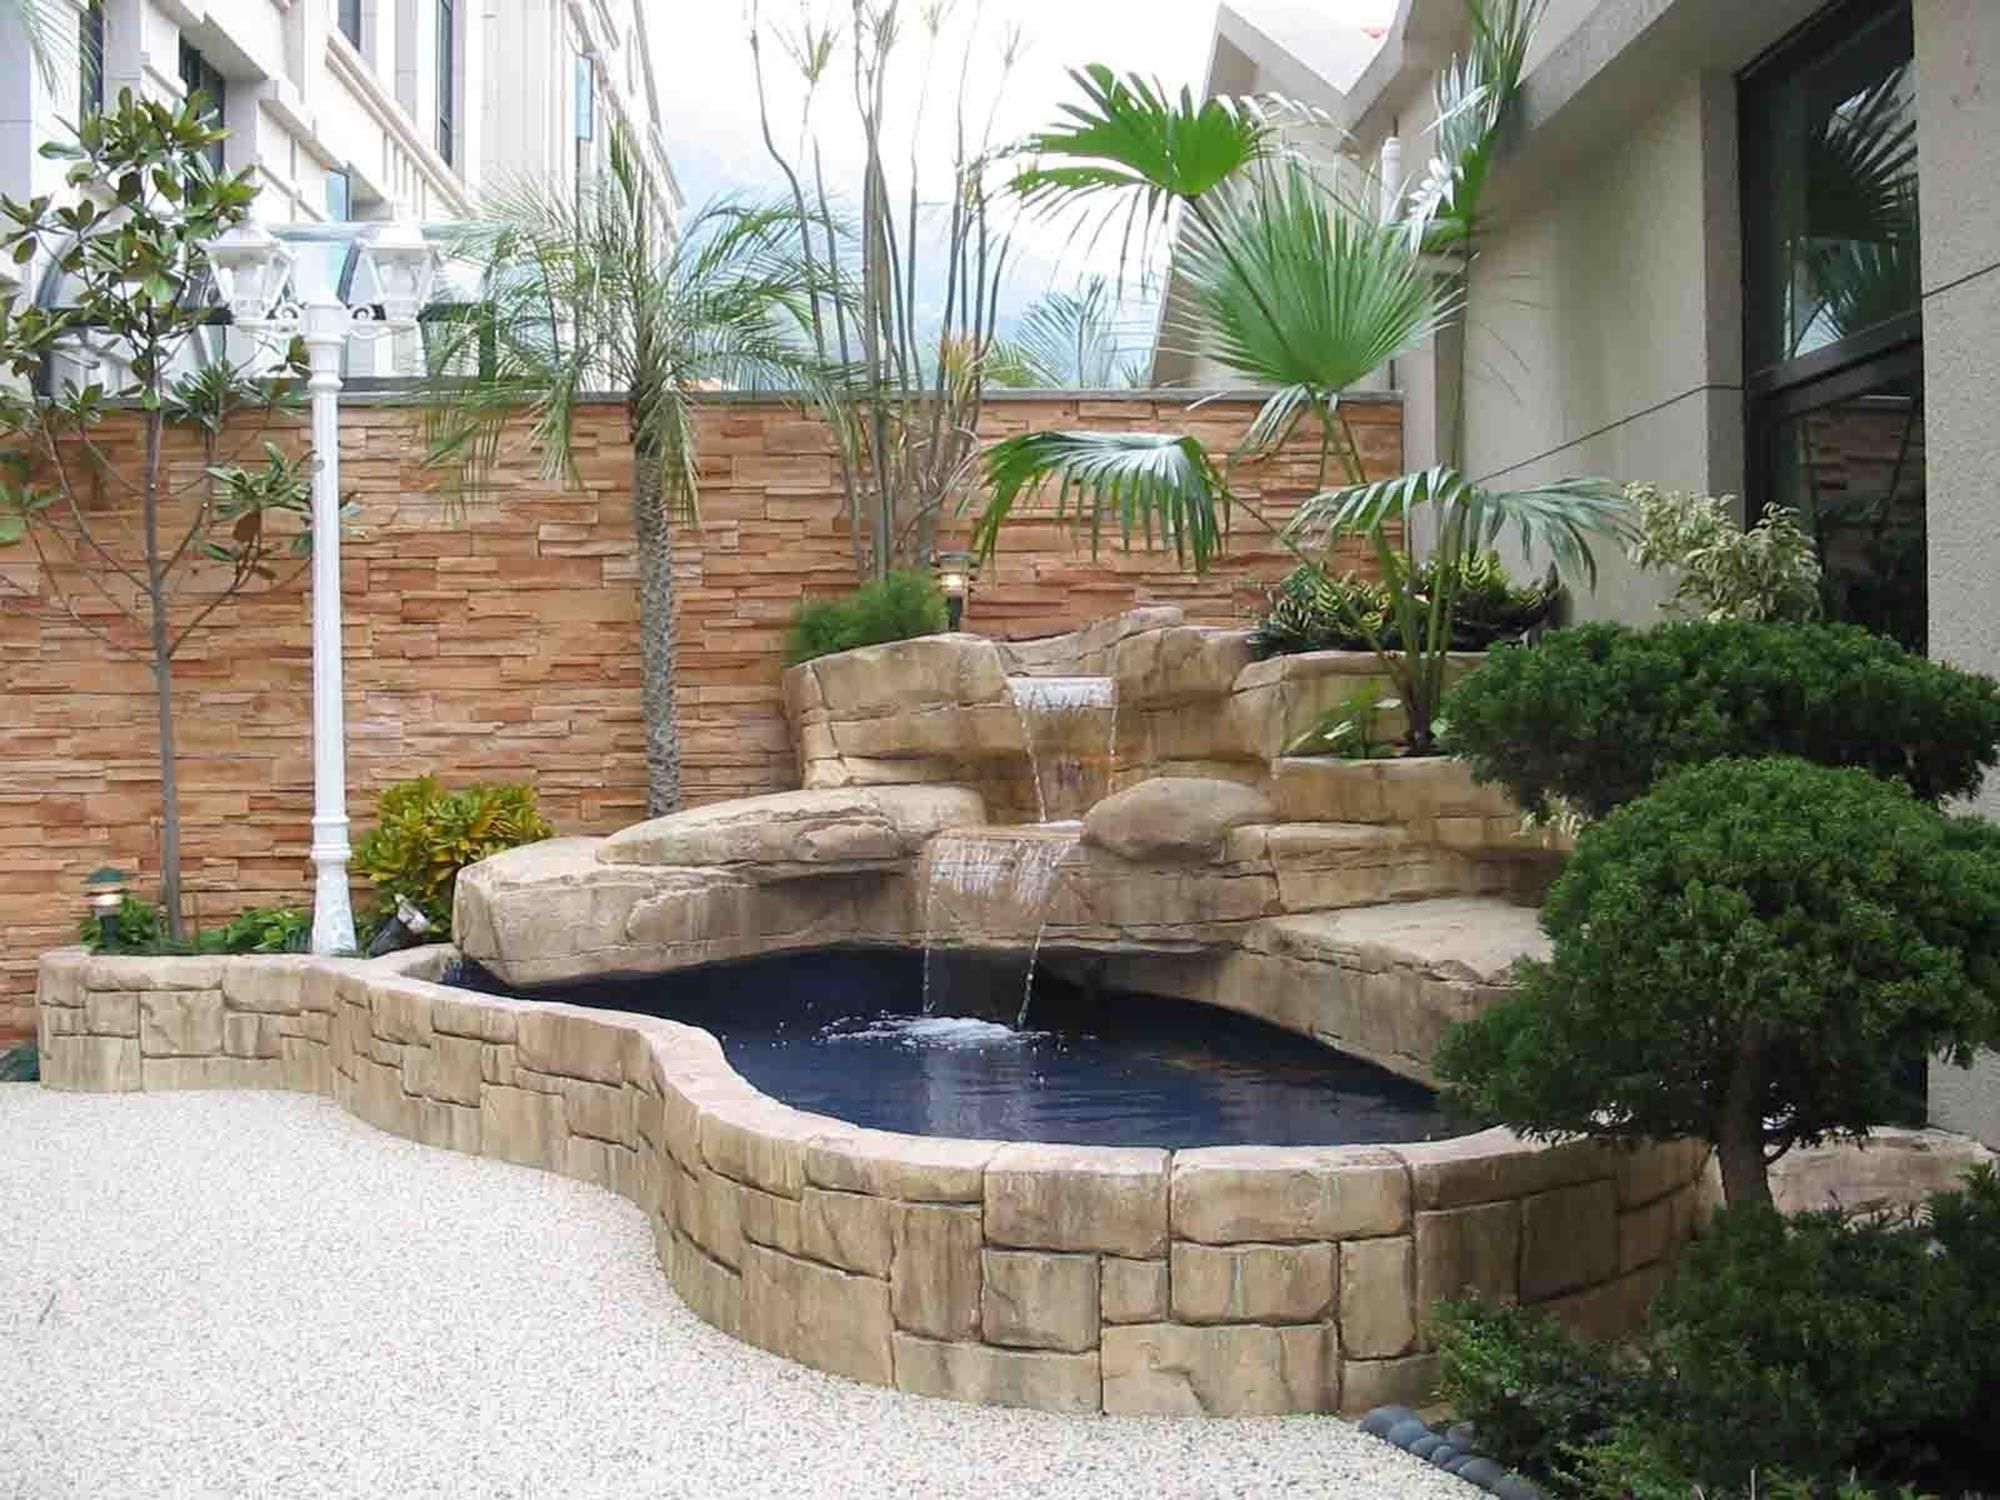 Best Beautiful Above Ground Pond With Simple Design 6 ... on Above Ground Ponds Ideas id=19495